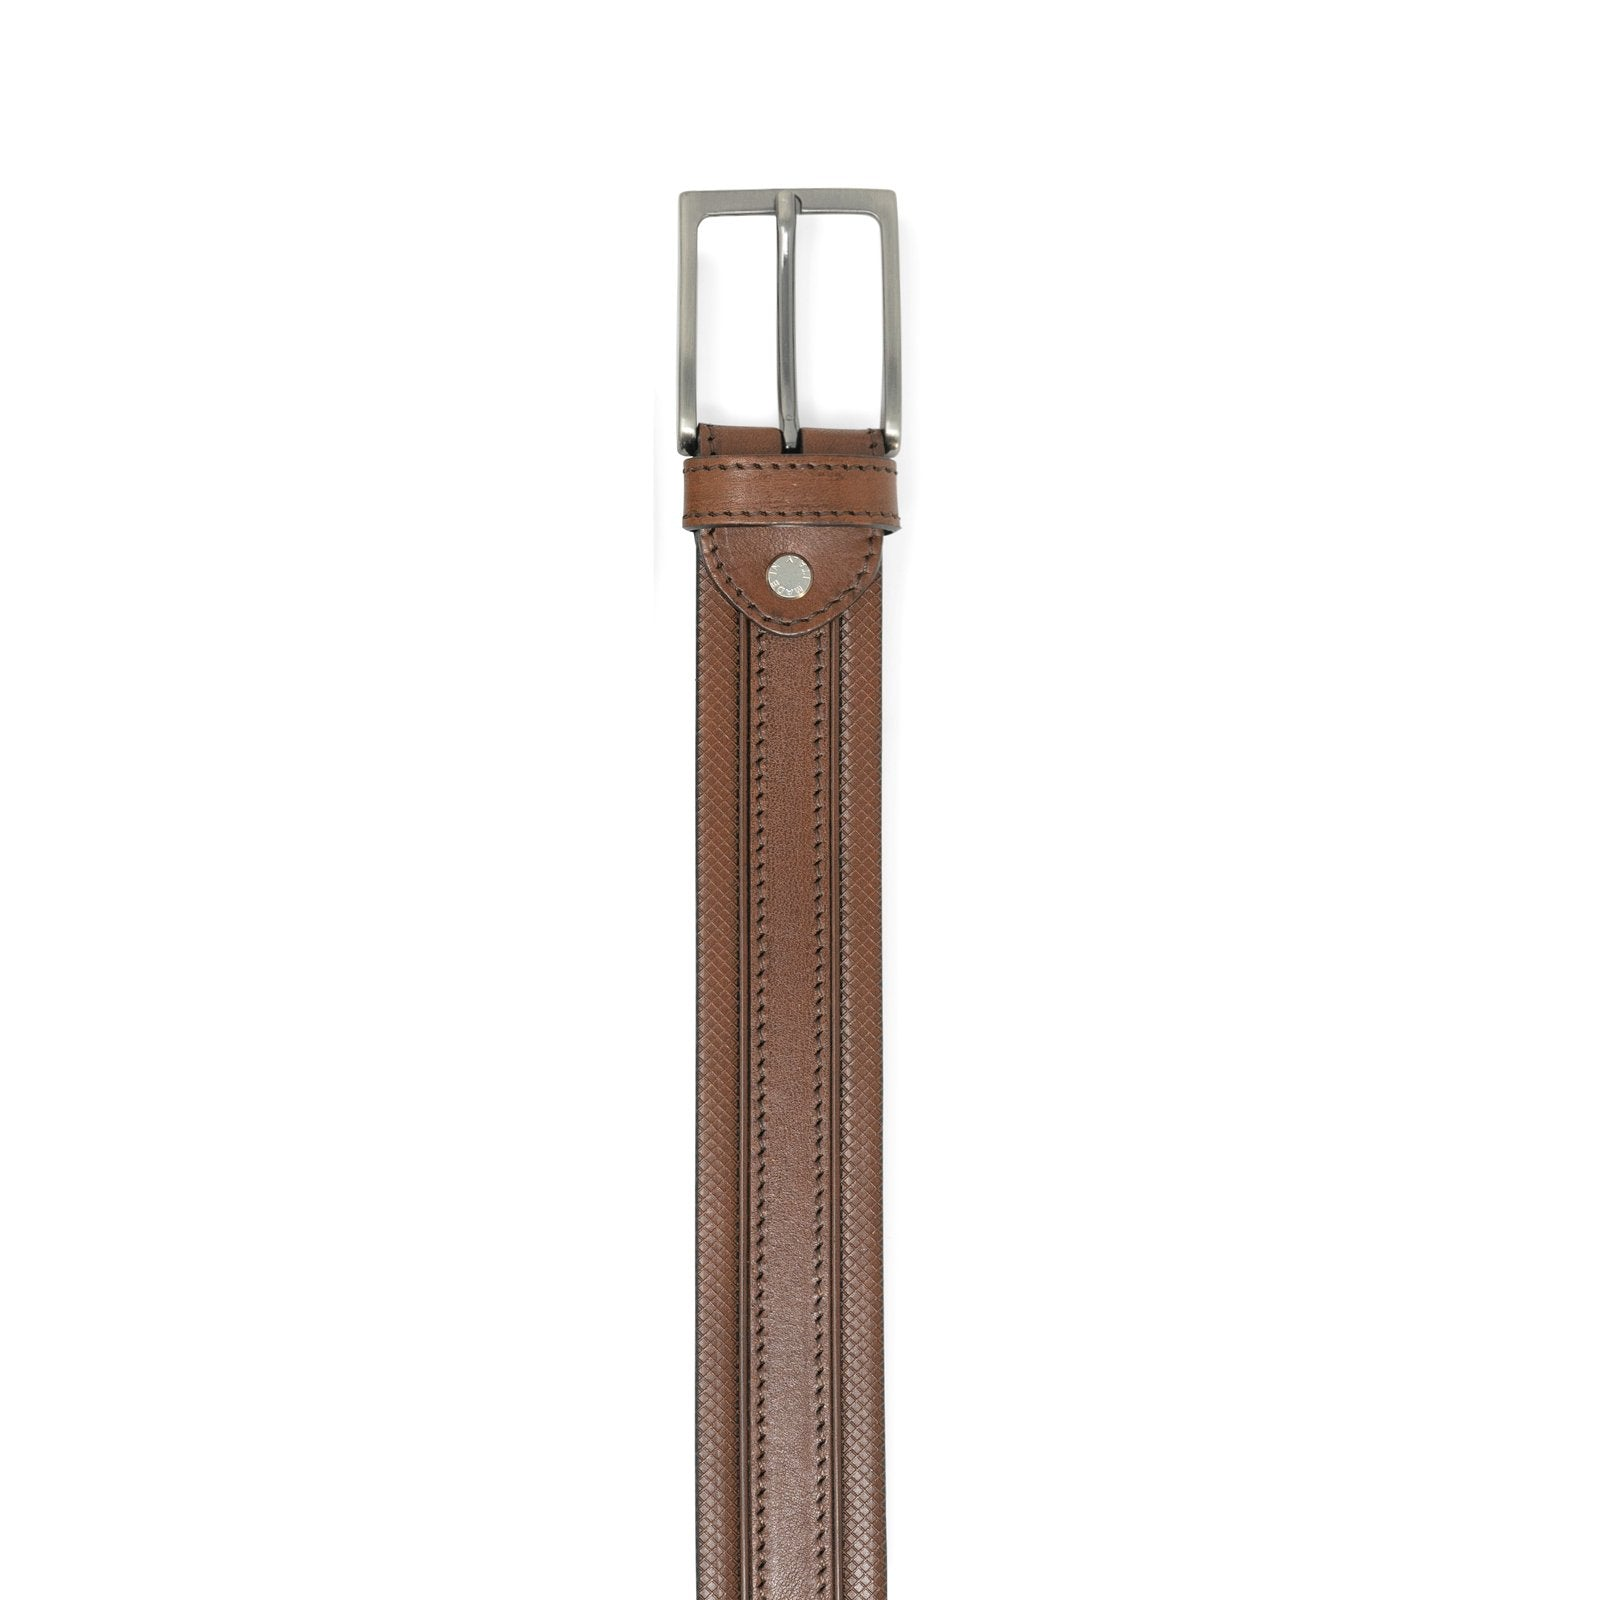 Taurus Cuoio Leather Belt GIAN81435 - Jennifer Tattanelli